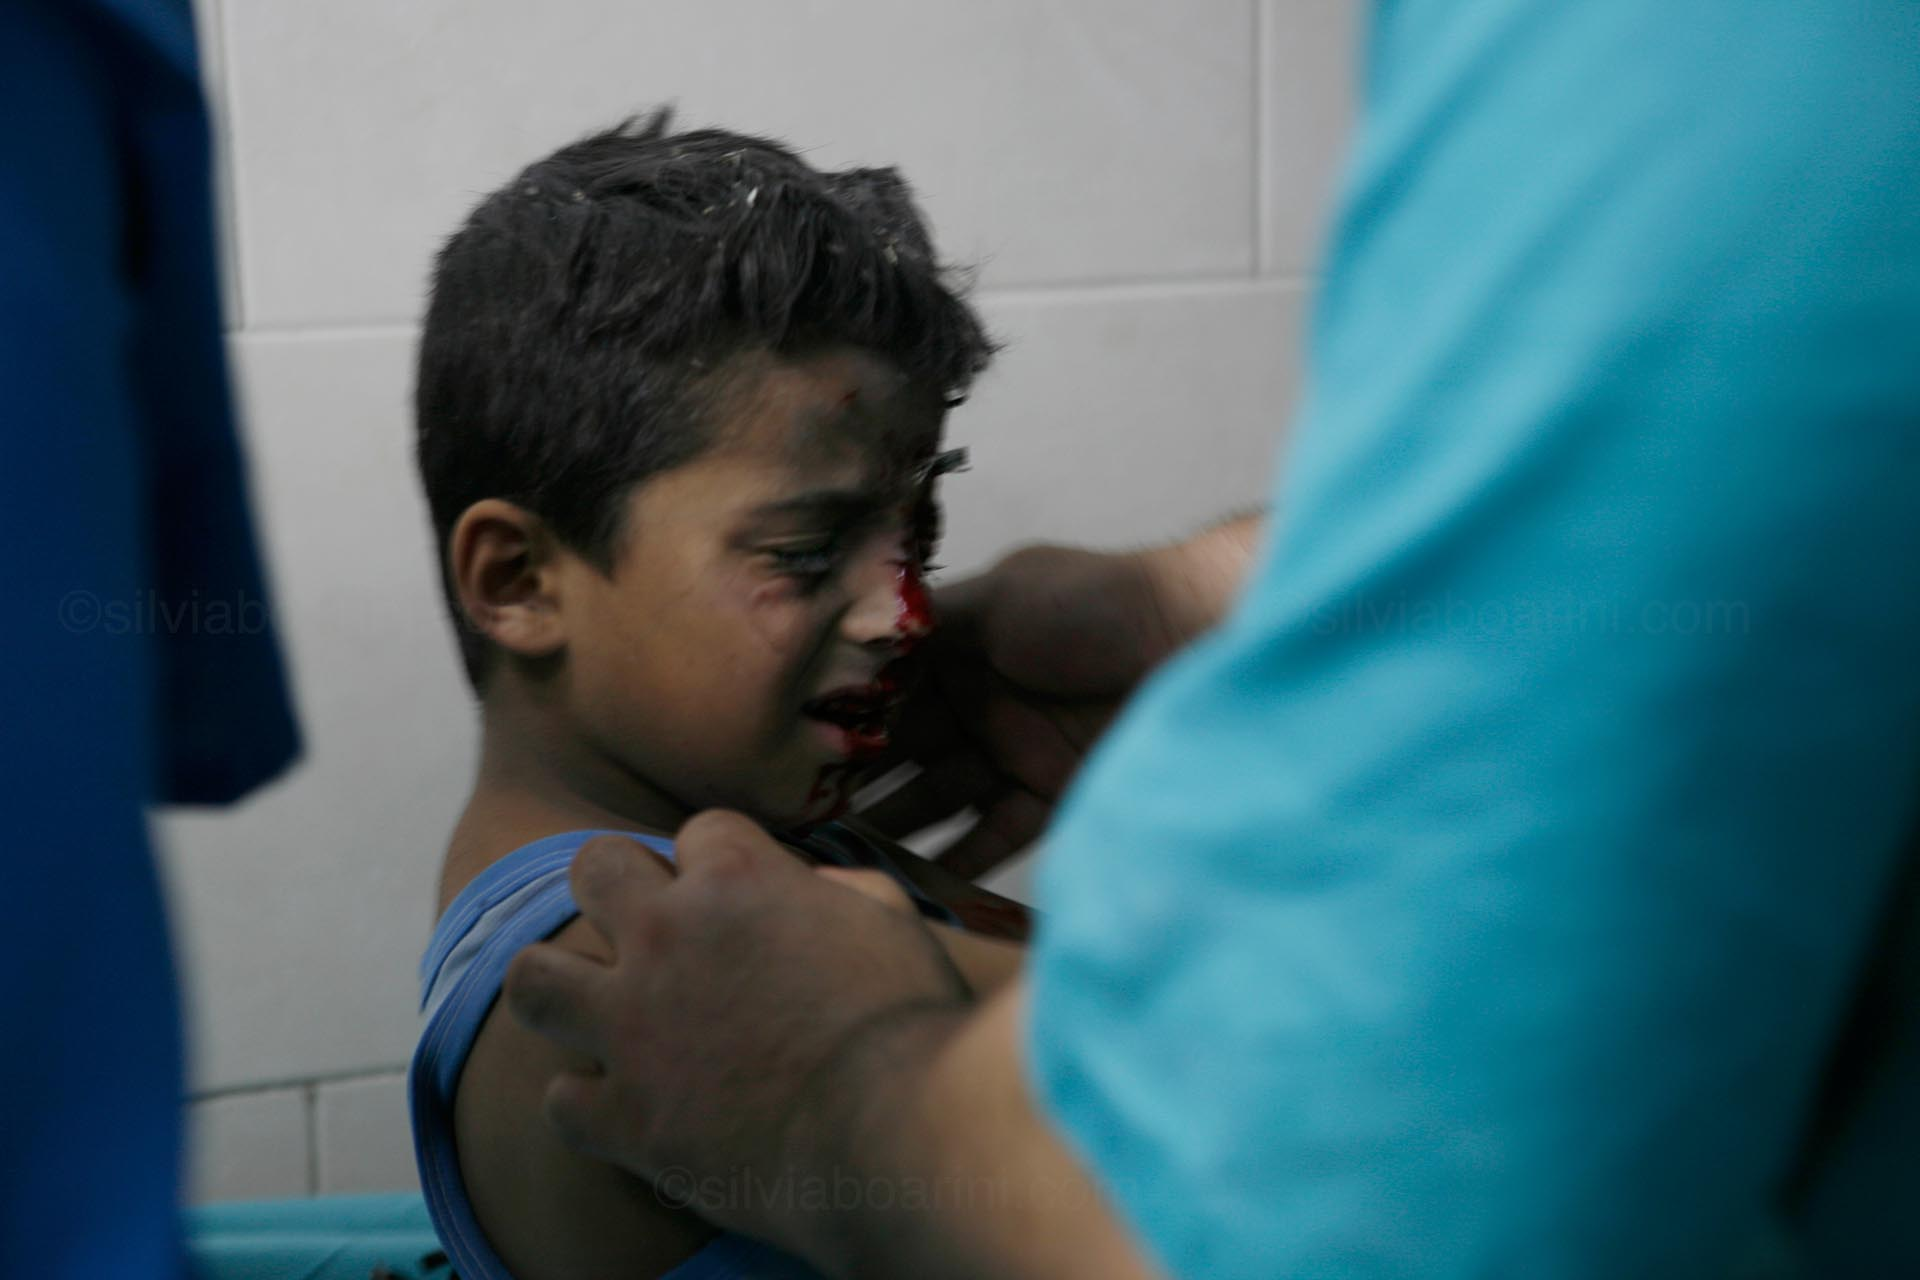 An injured child is brought in to Shifa hospital following Israeli shelling. Gaza, July 2014